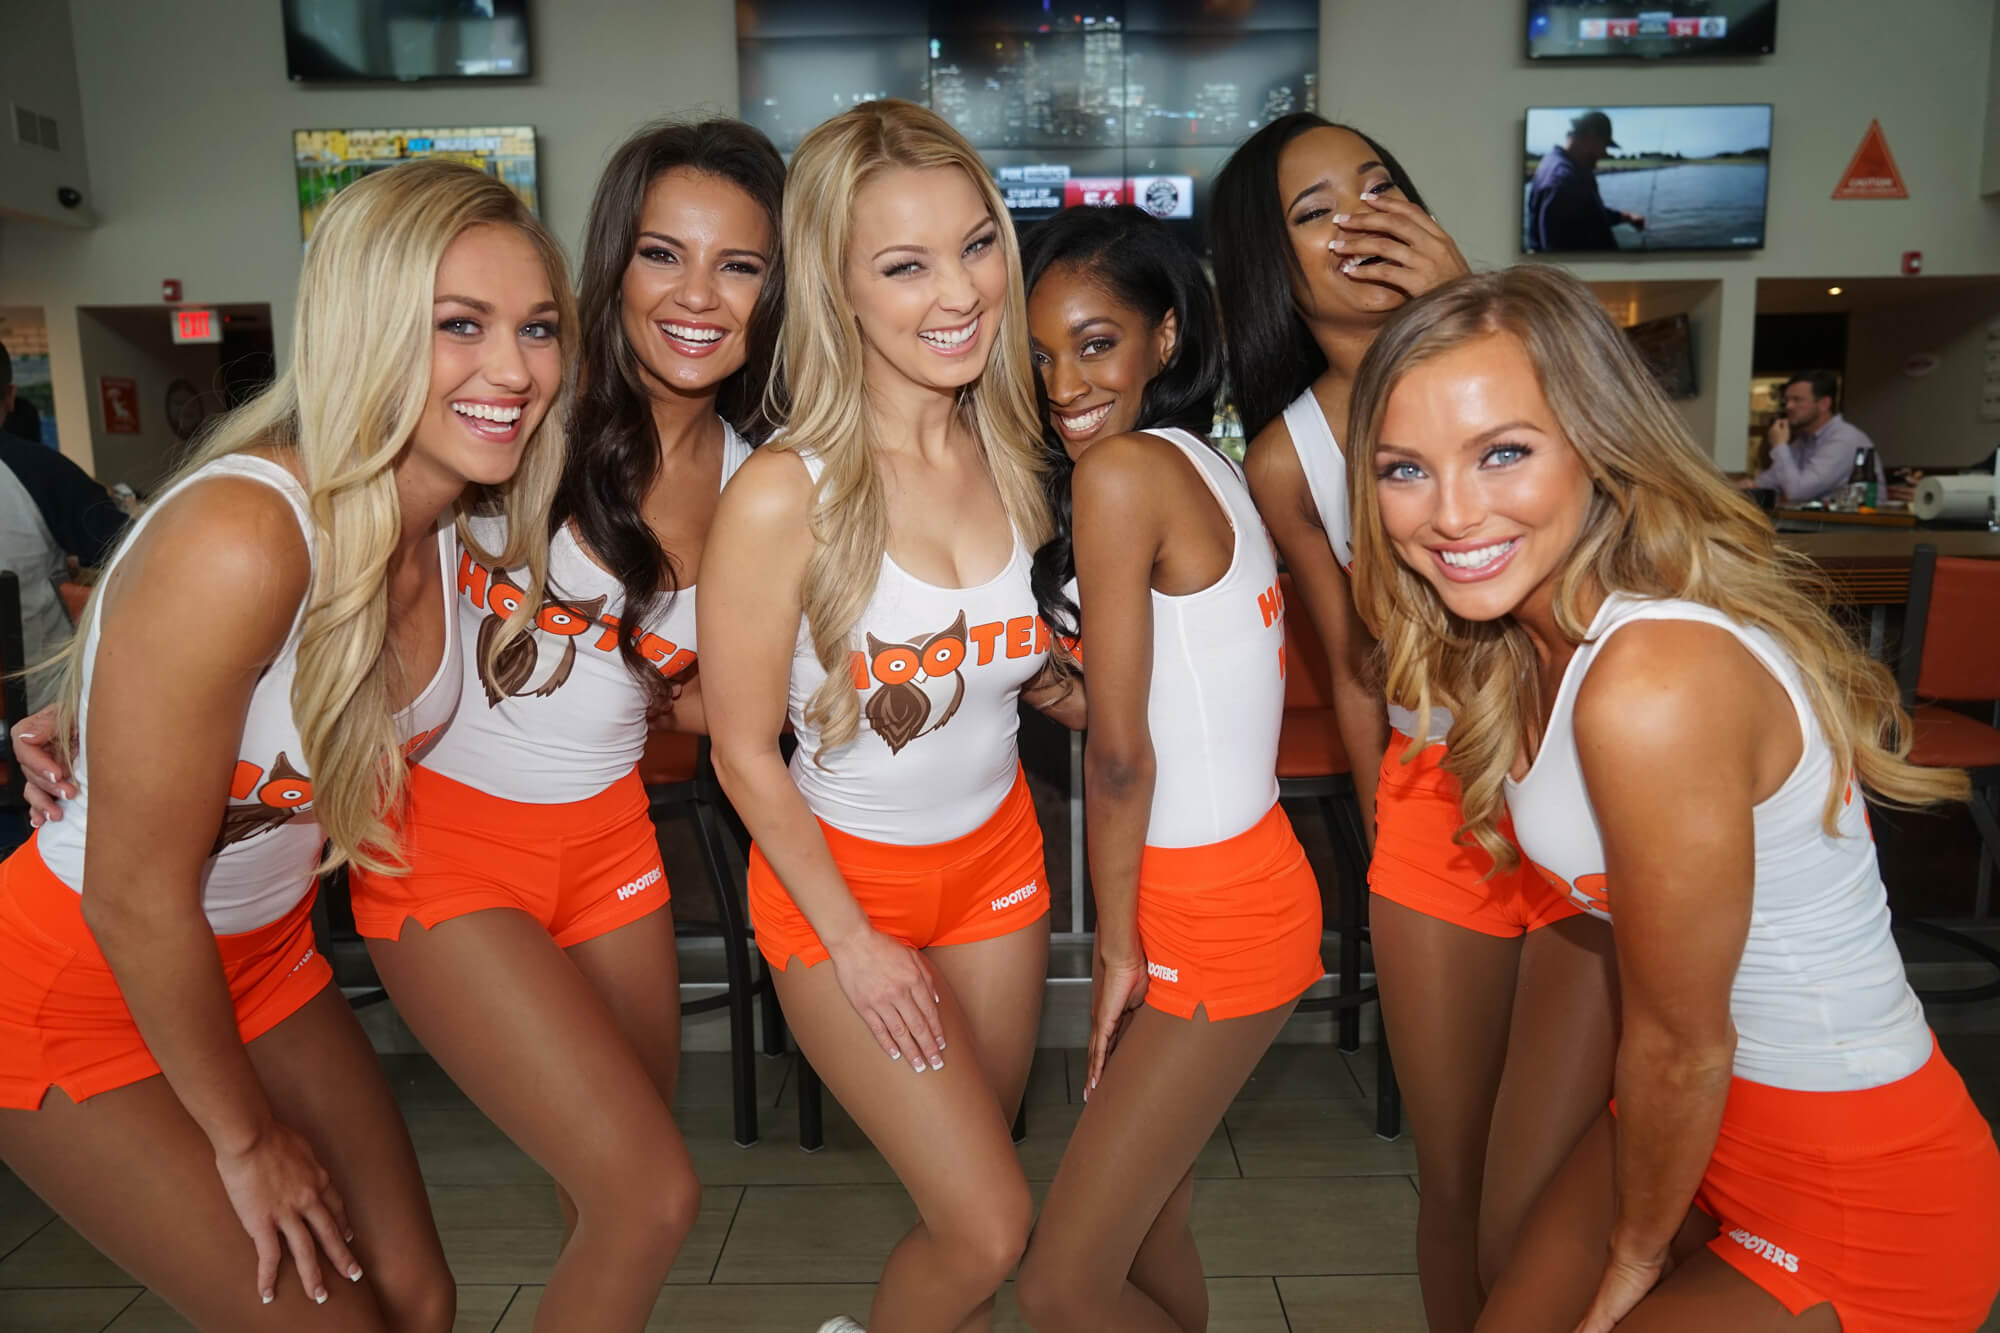 Unsere Hooters Girl